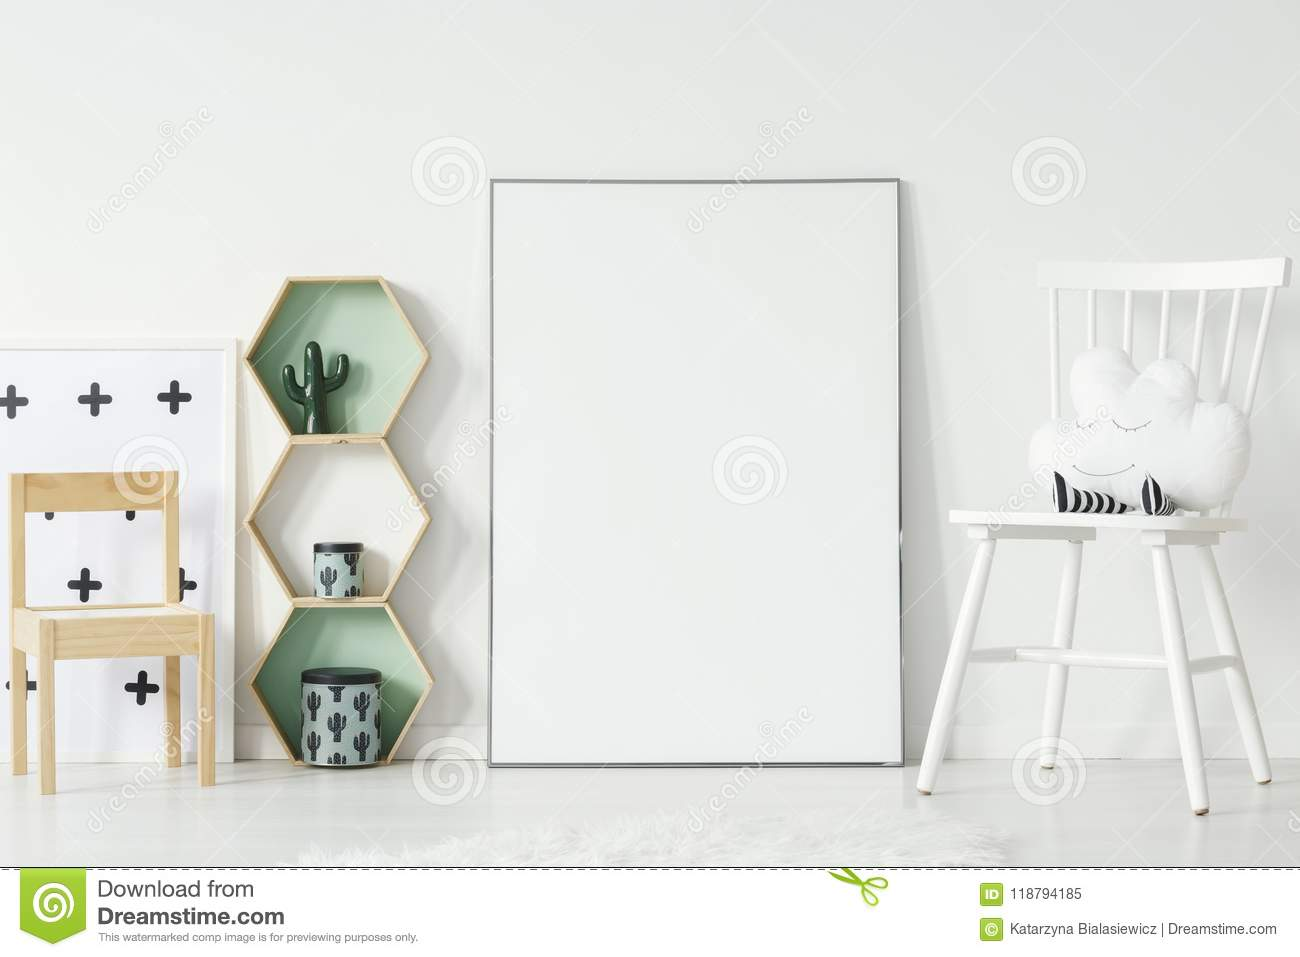 White and wooden chair in kid`s room interior with mockup of emp